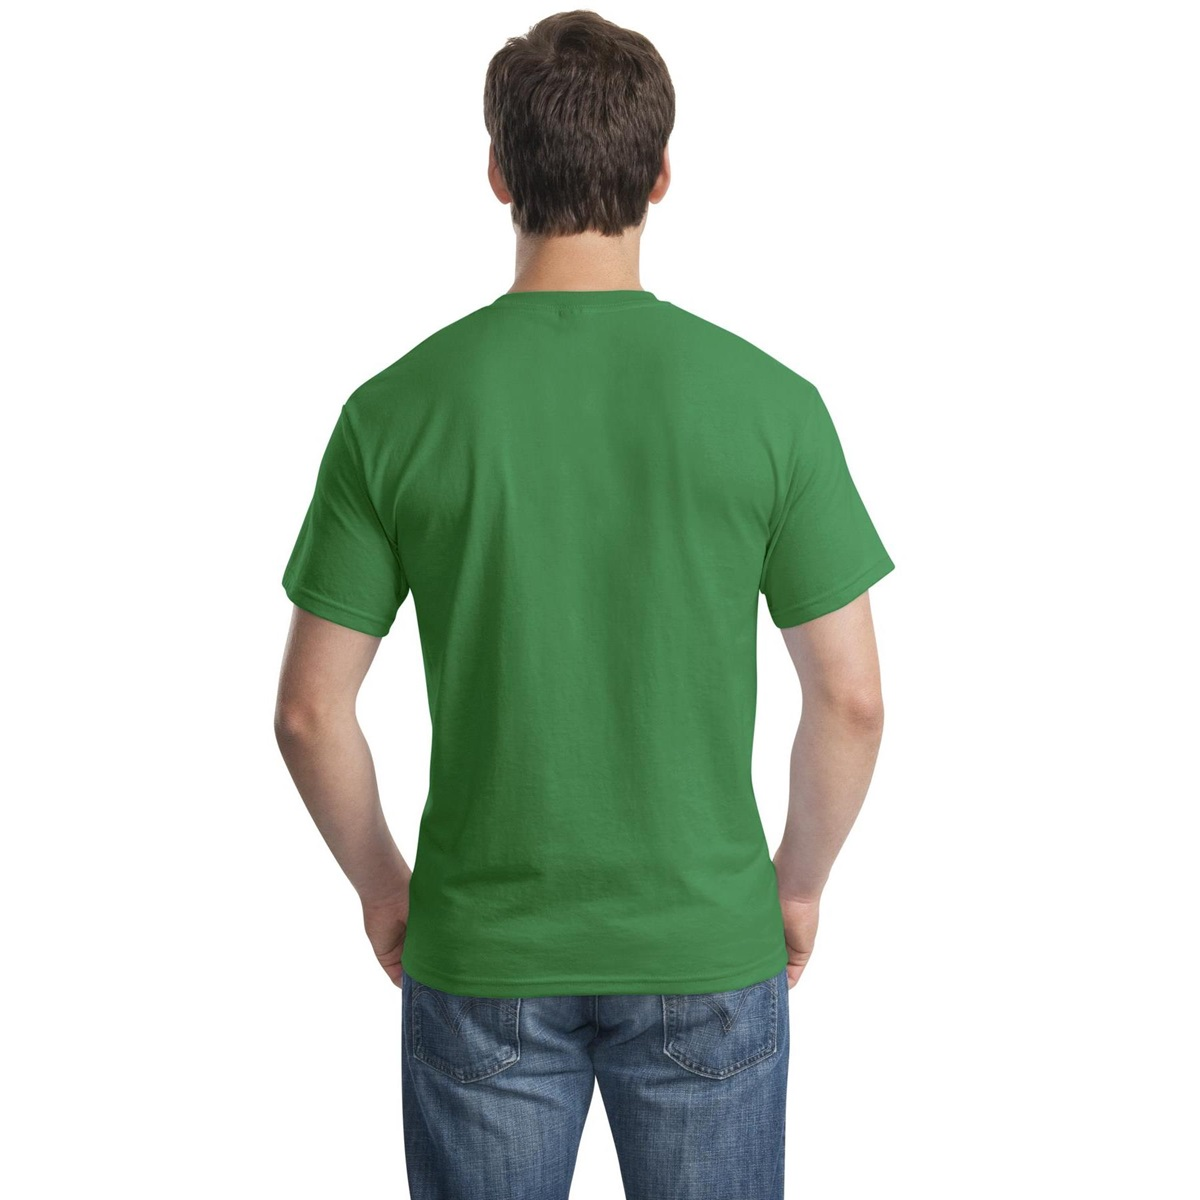 Gildan 8000 dryblend t shirt kelly green for Gildan camouflage t shirts